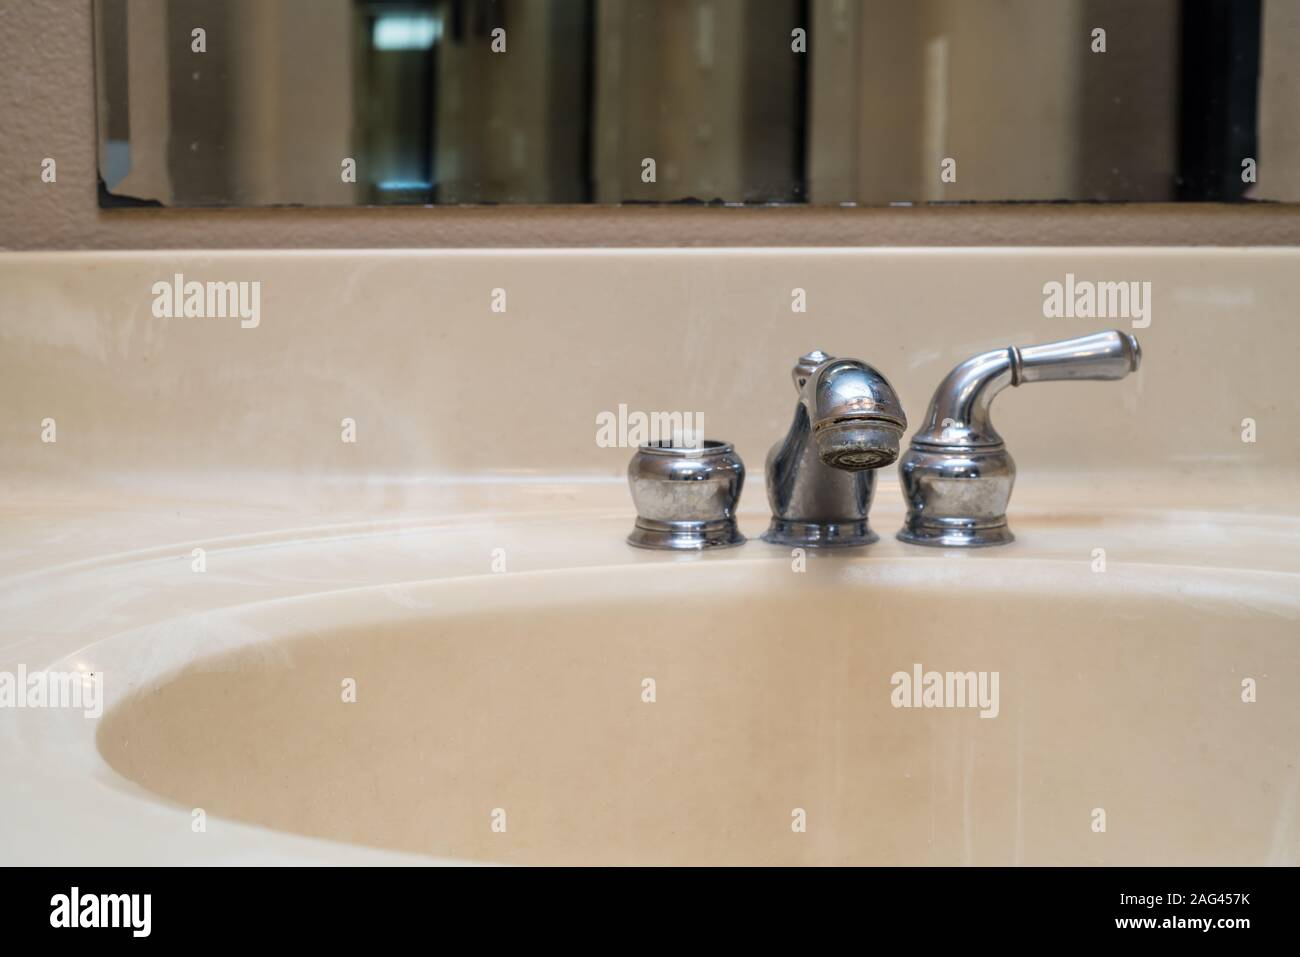 https www alamy com a photo of a broken faucet great for a plumbing ad image336923431 html